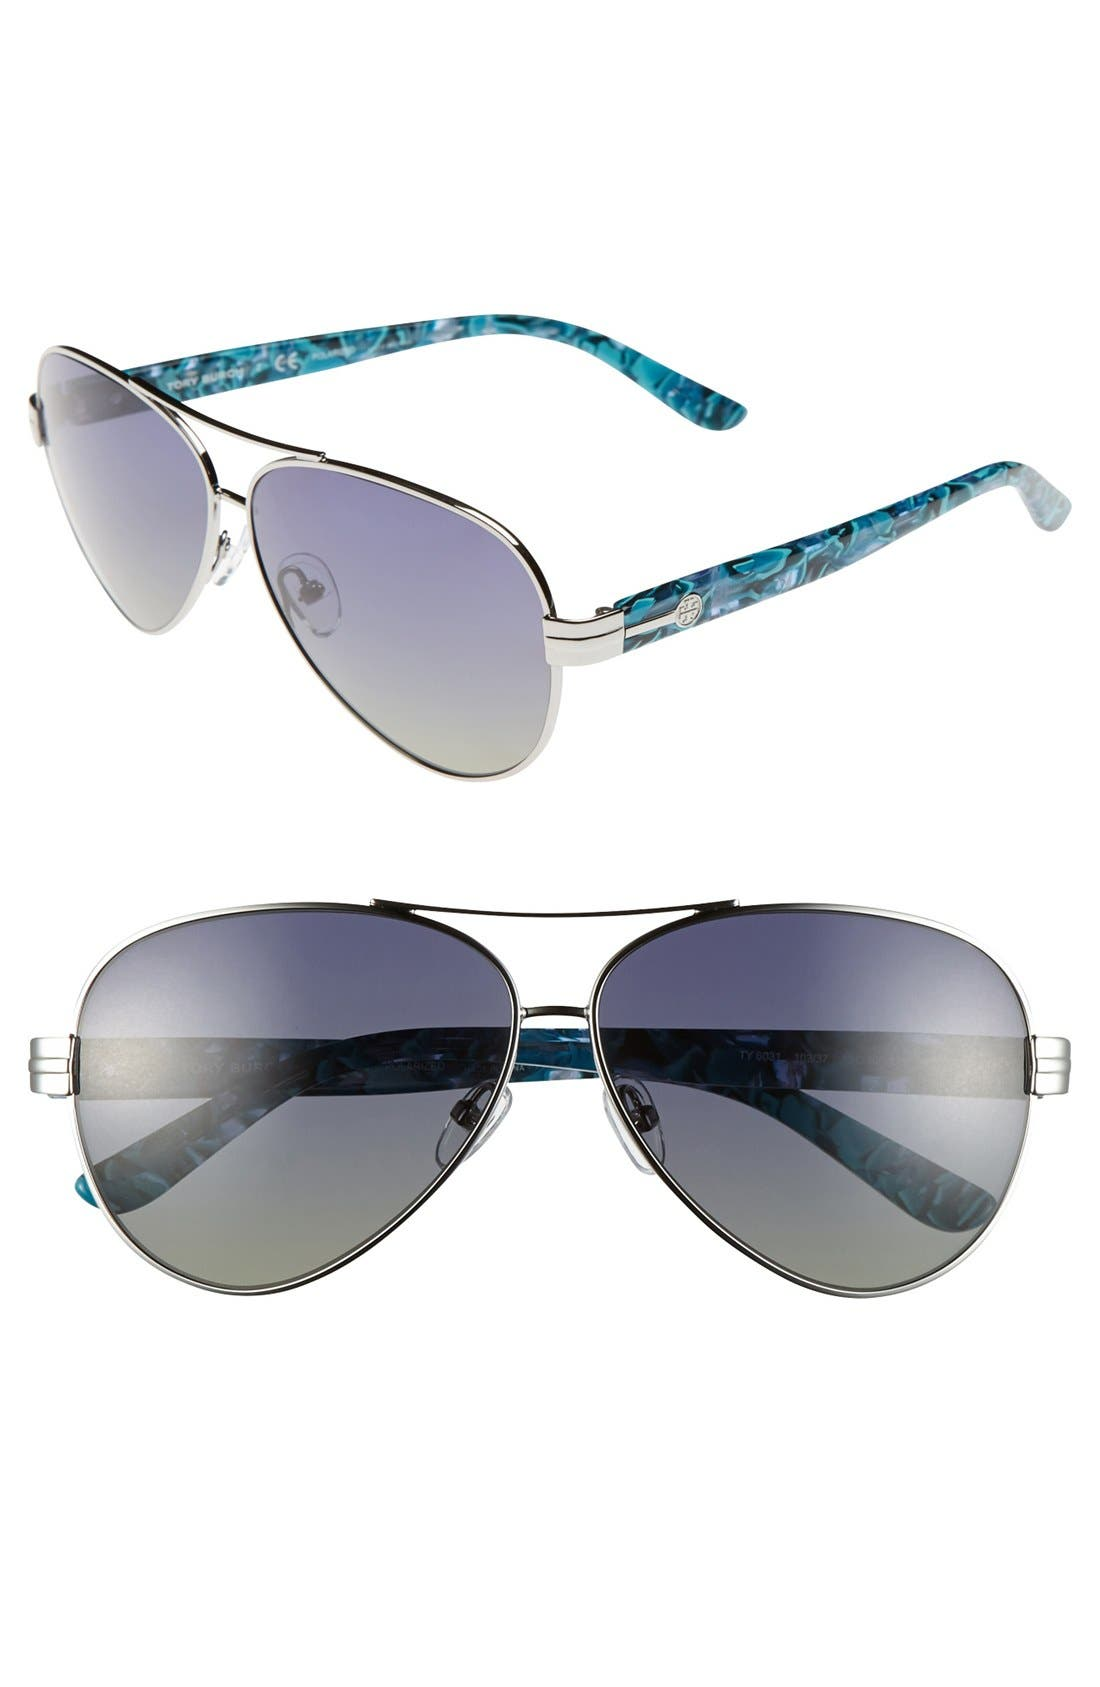 Alternate Image 1 Selected - Tory Burch 59mm Polarized Aviator Sunglasses (Online Only)